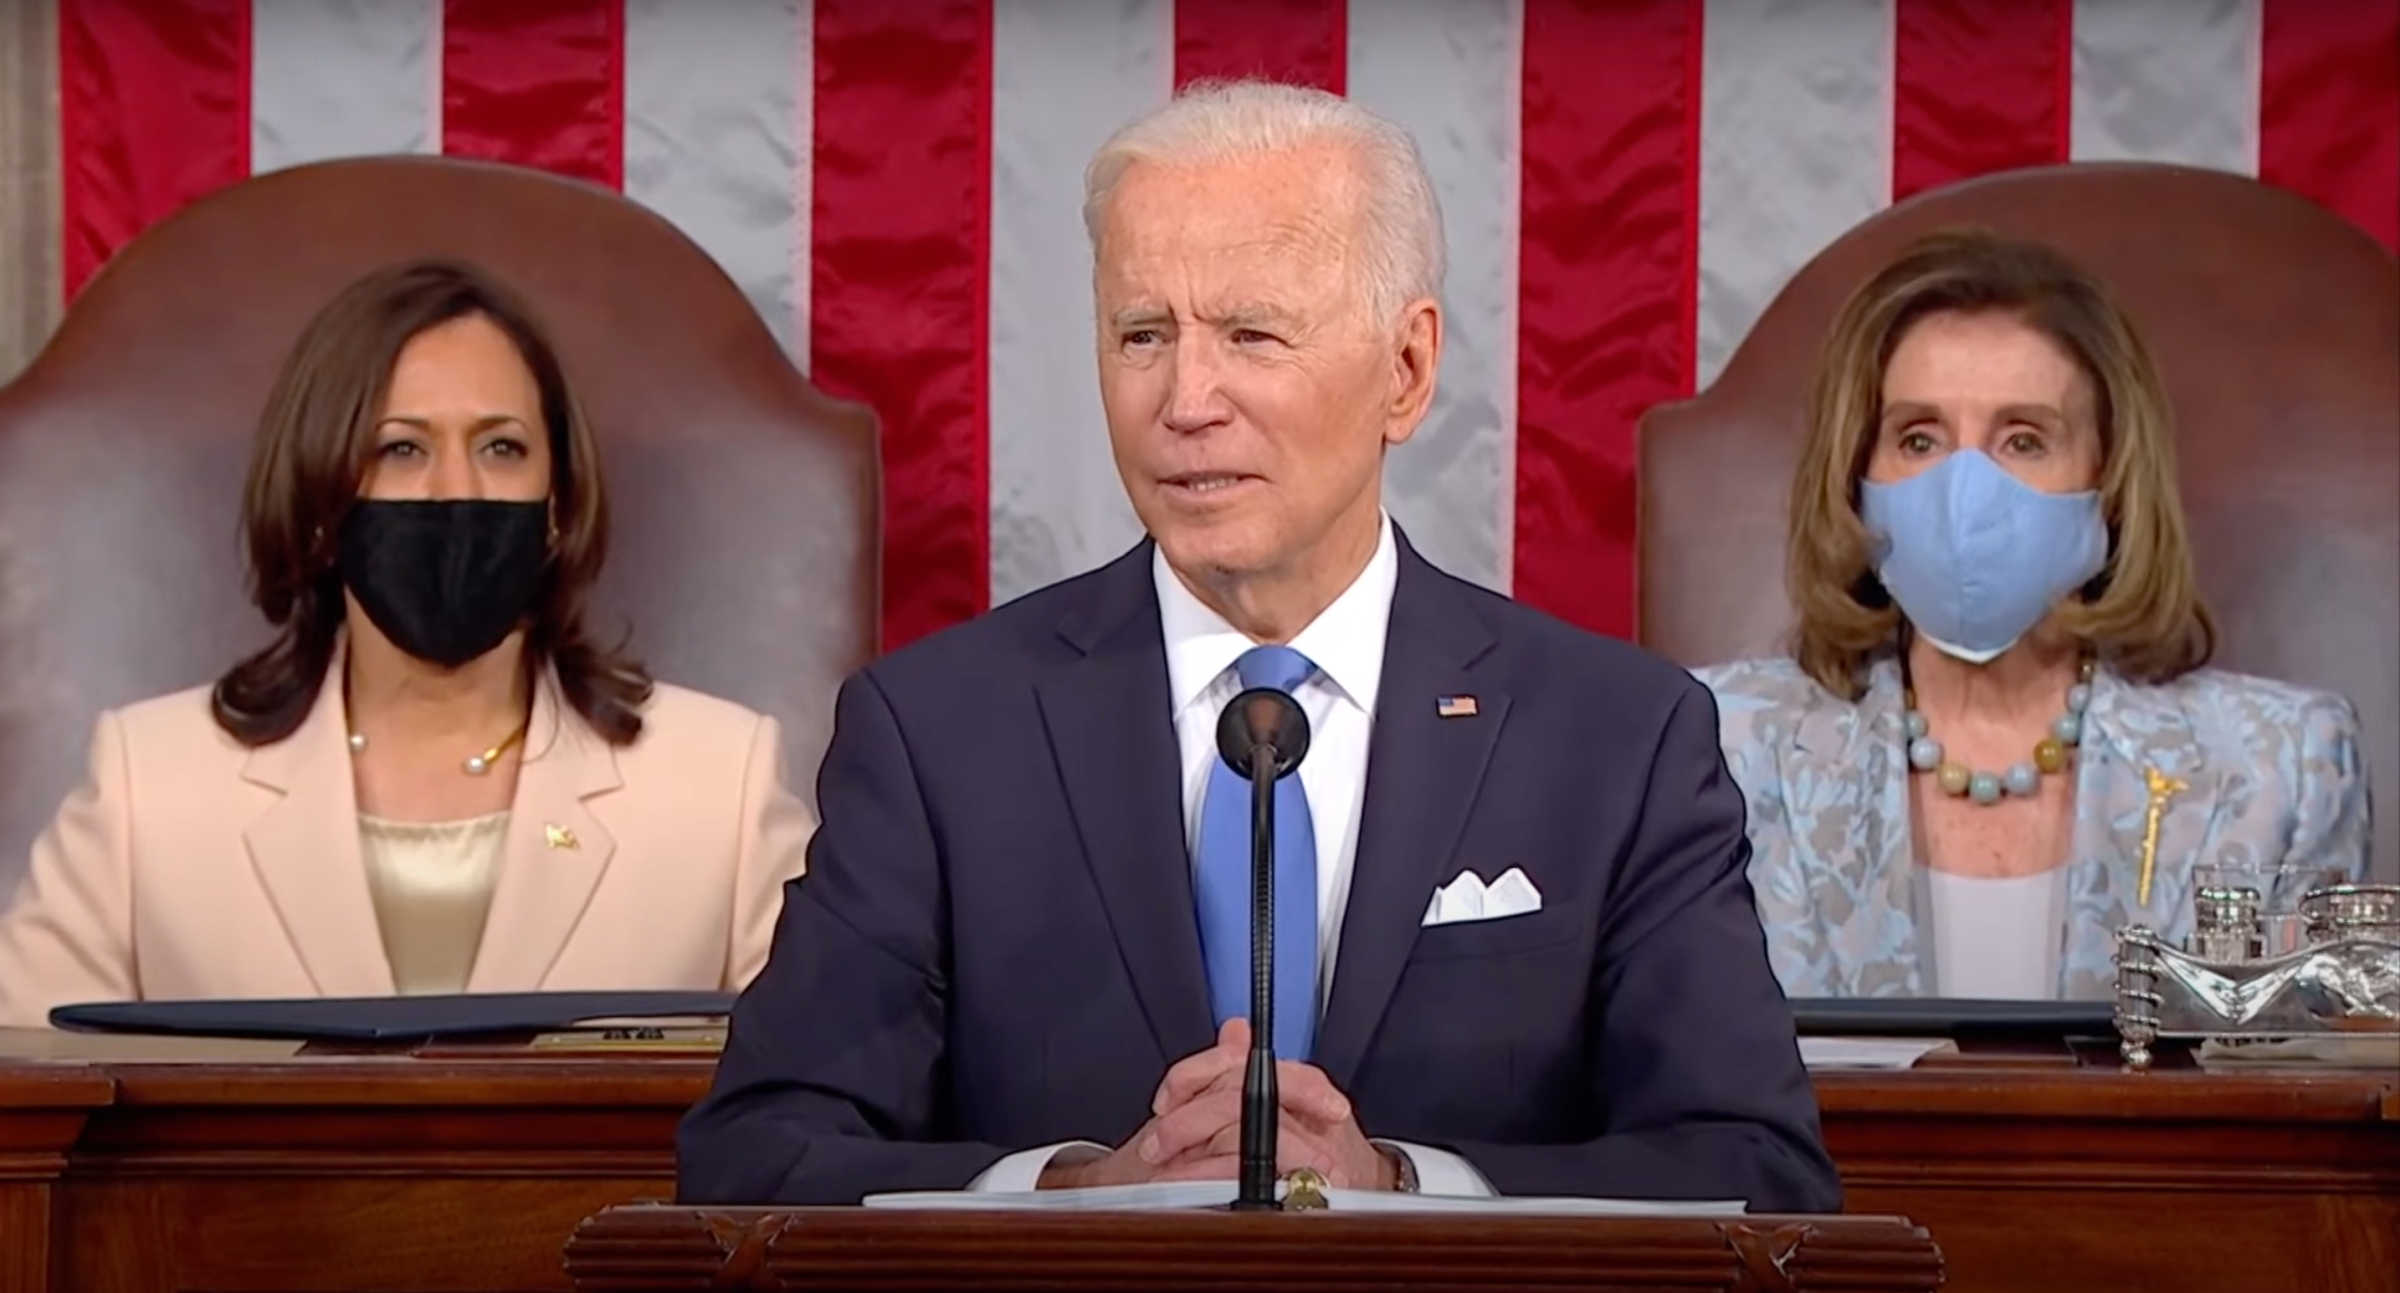 Joe Biden gives his first joint address to Congress at the Capitol building.